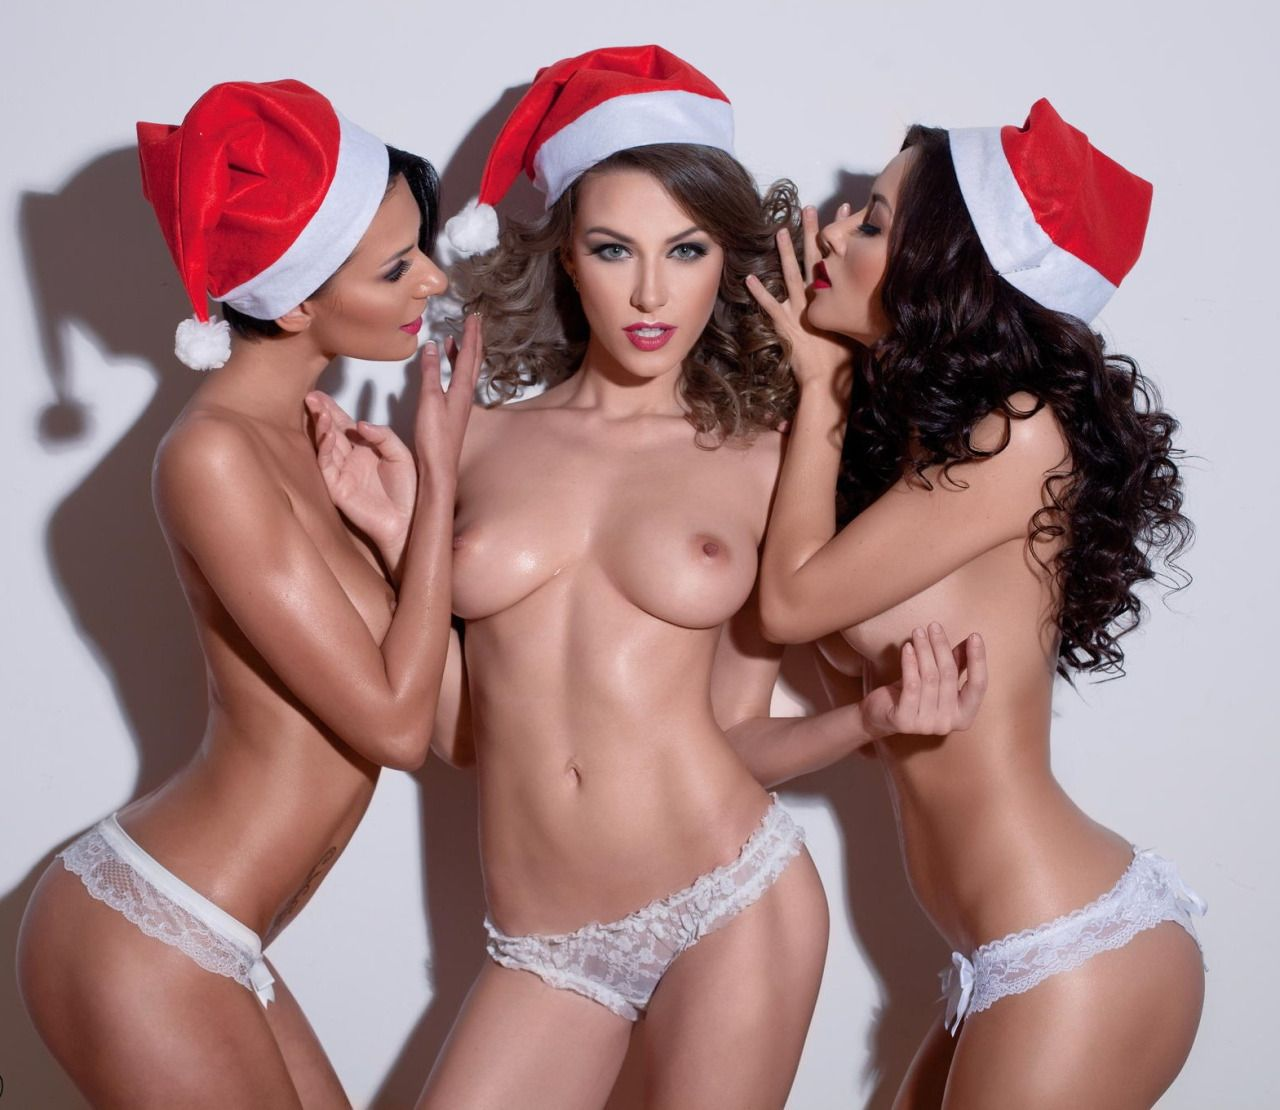 Sex santa sexy nude christmas girls